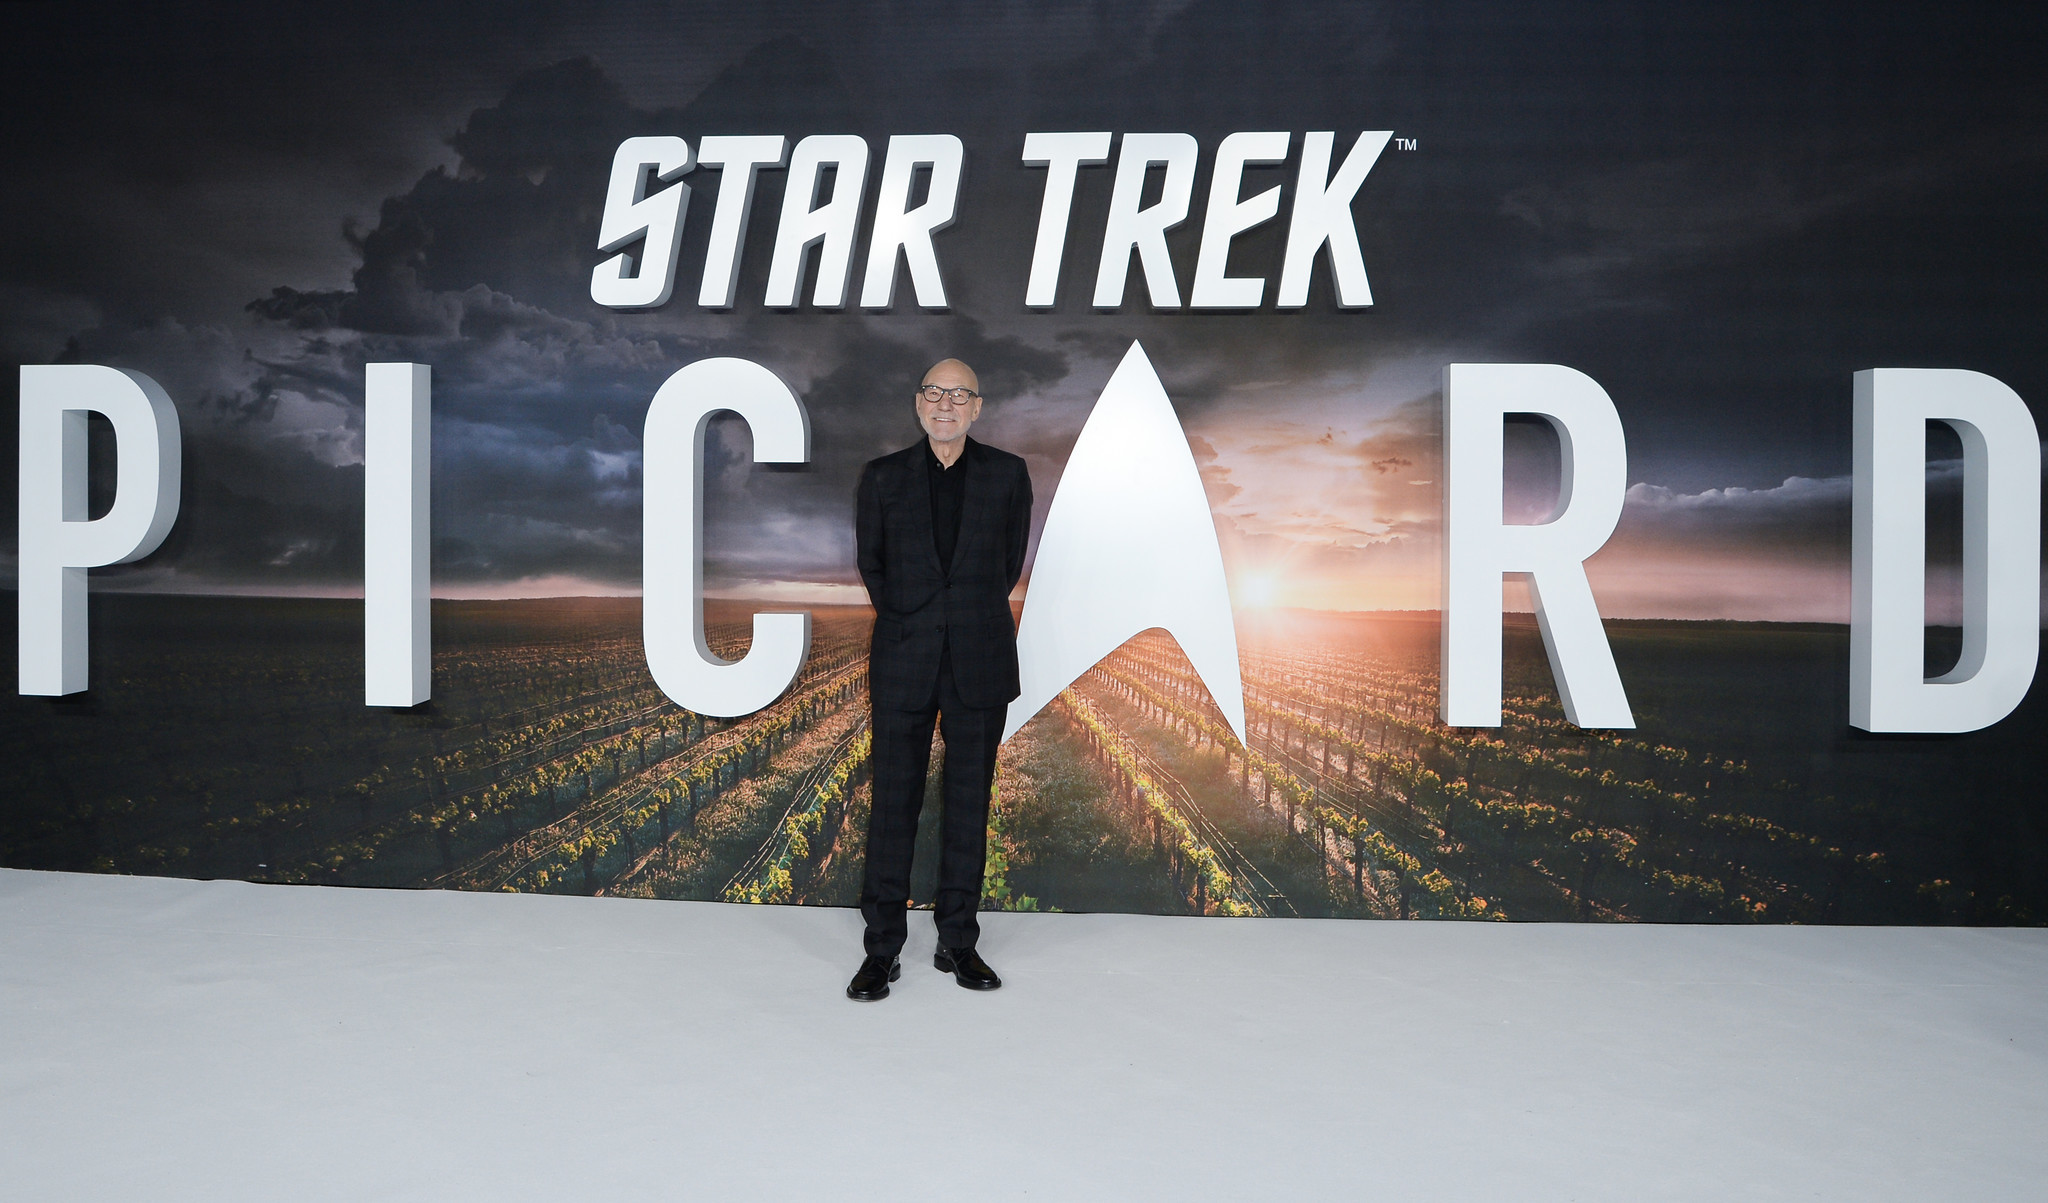 'Star Trek: Picard' beams up strong ratings during first launch